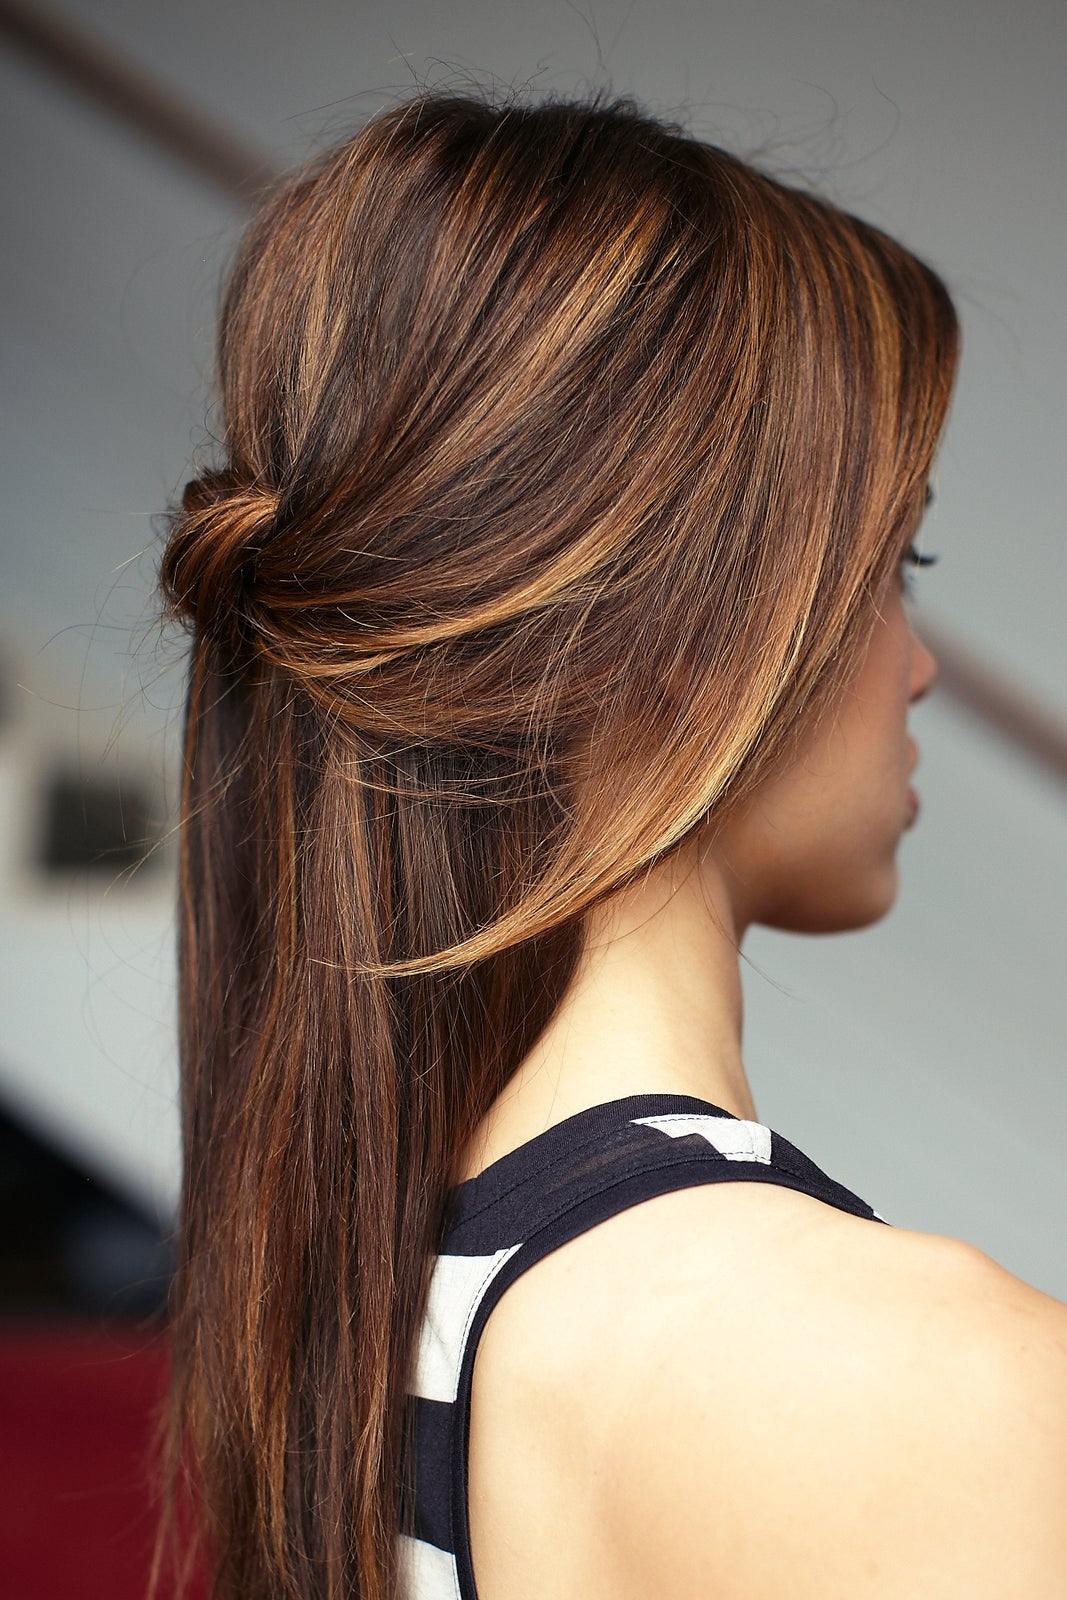 Chic DIY Cascading Knotted Half Updo Chic DIY Cascading Knotted Half Updo new pictures